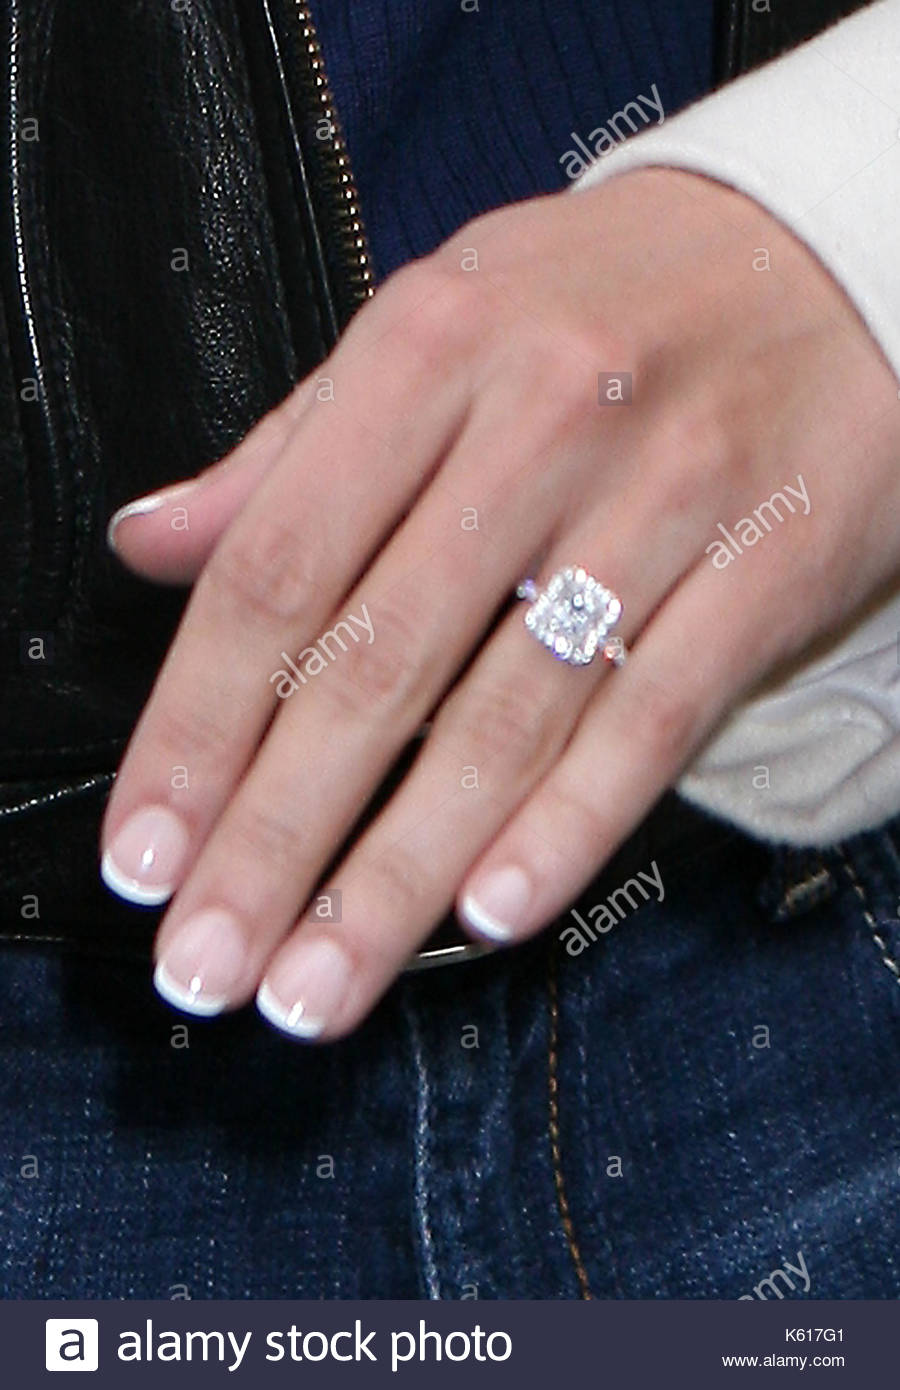 The Ring Vienna S Casual Luxury Hotel Vienna: Vienna Girardi's Engagement Ring. 'The Bachelor' Jake